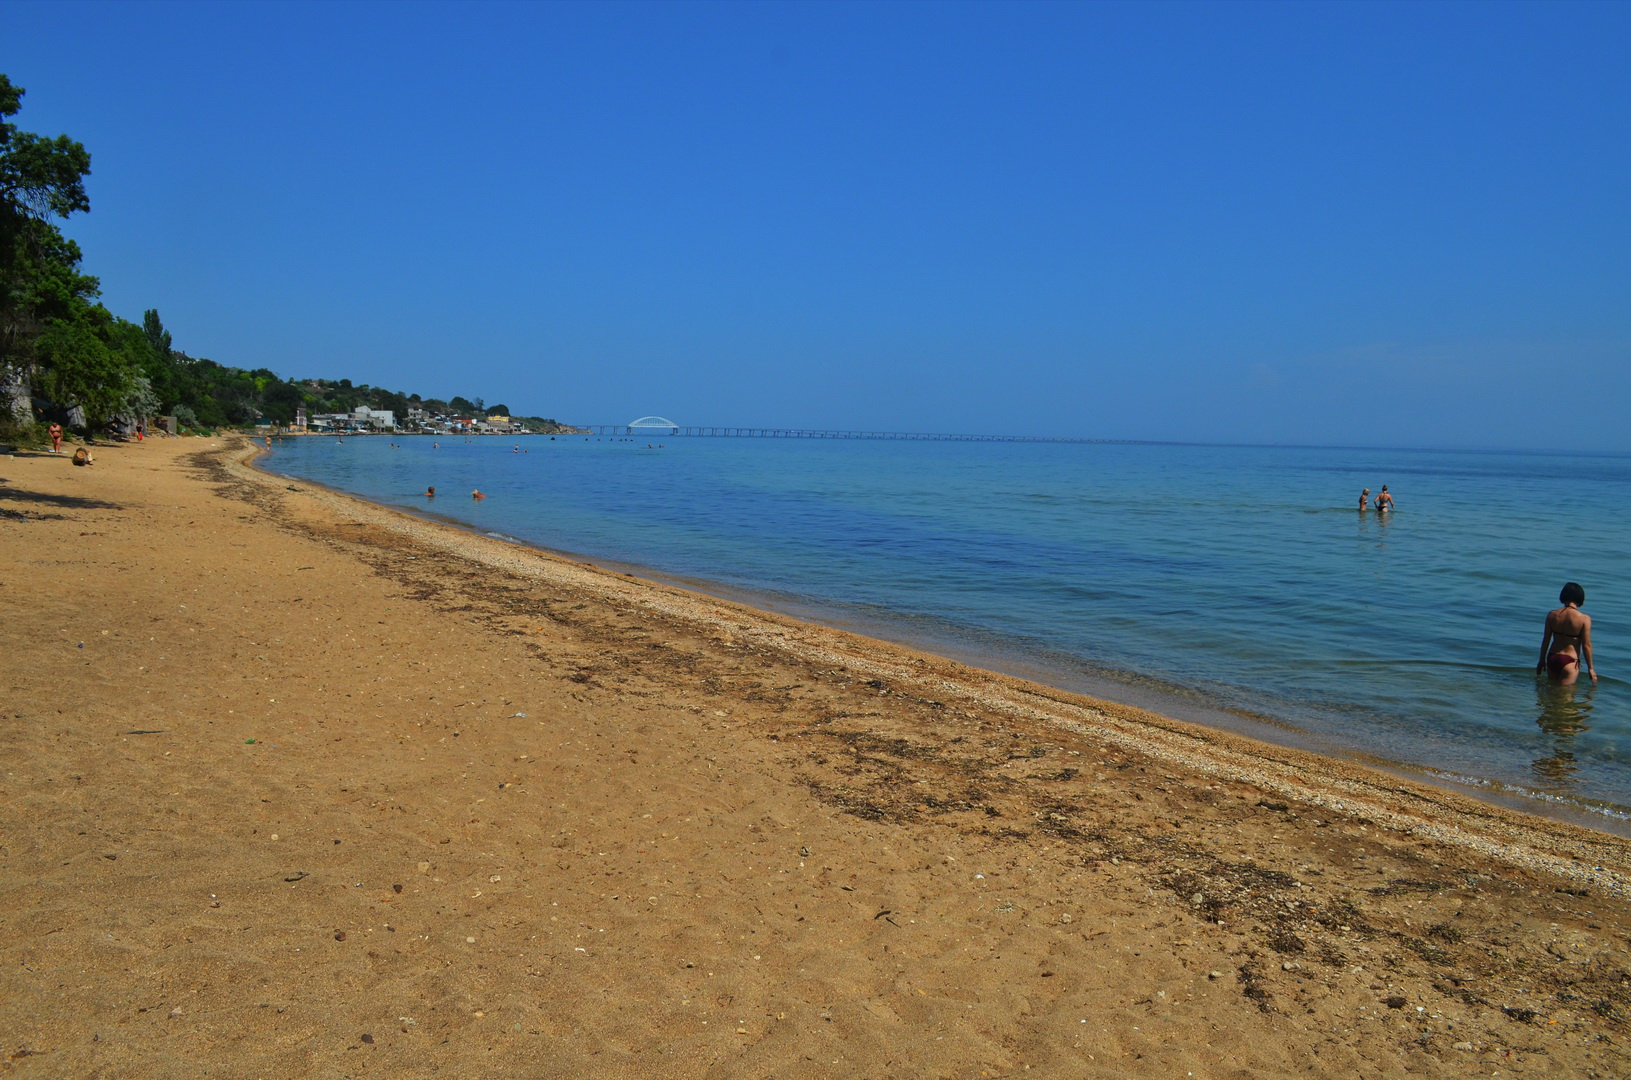 kerch beach 06 07 2020 2